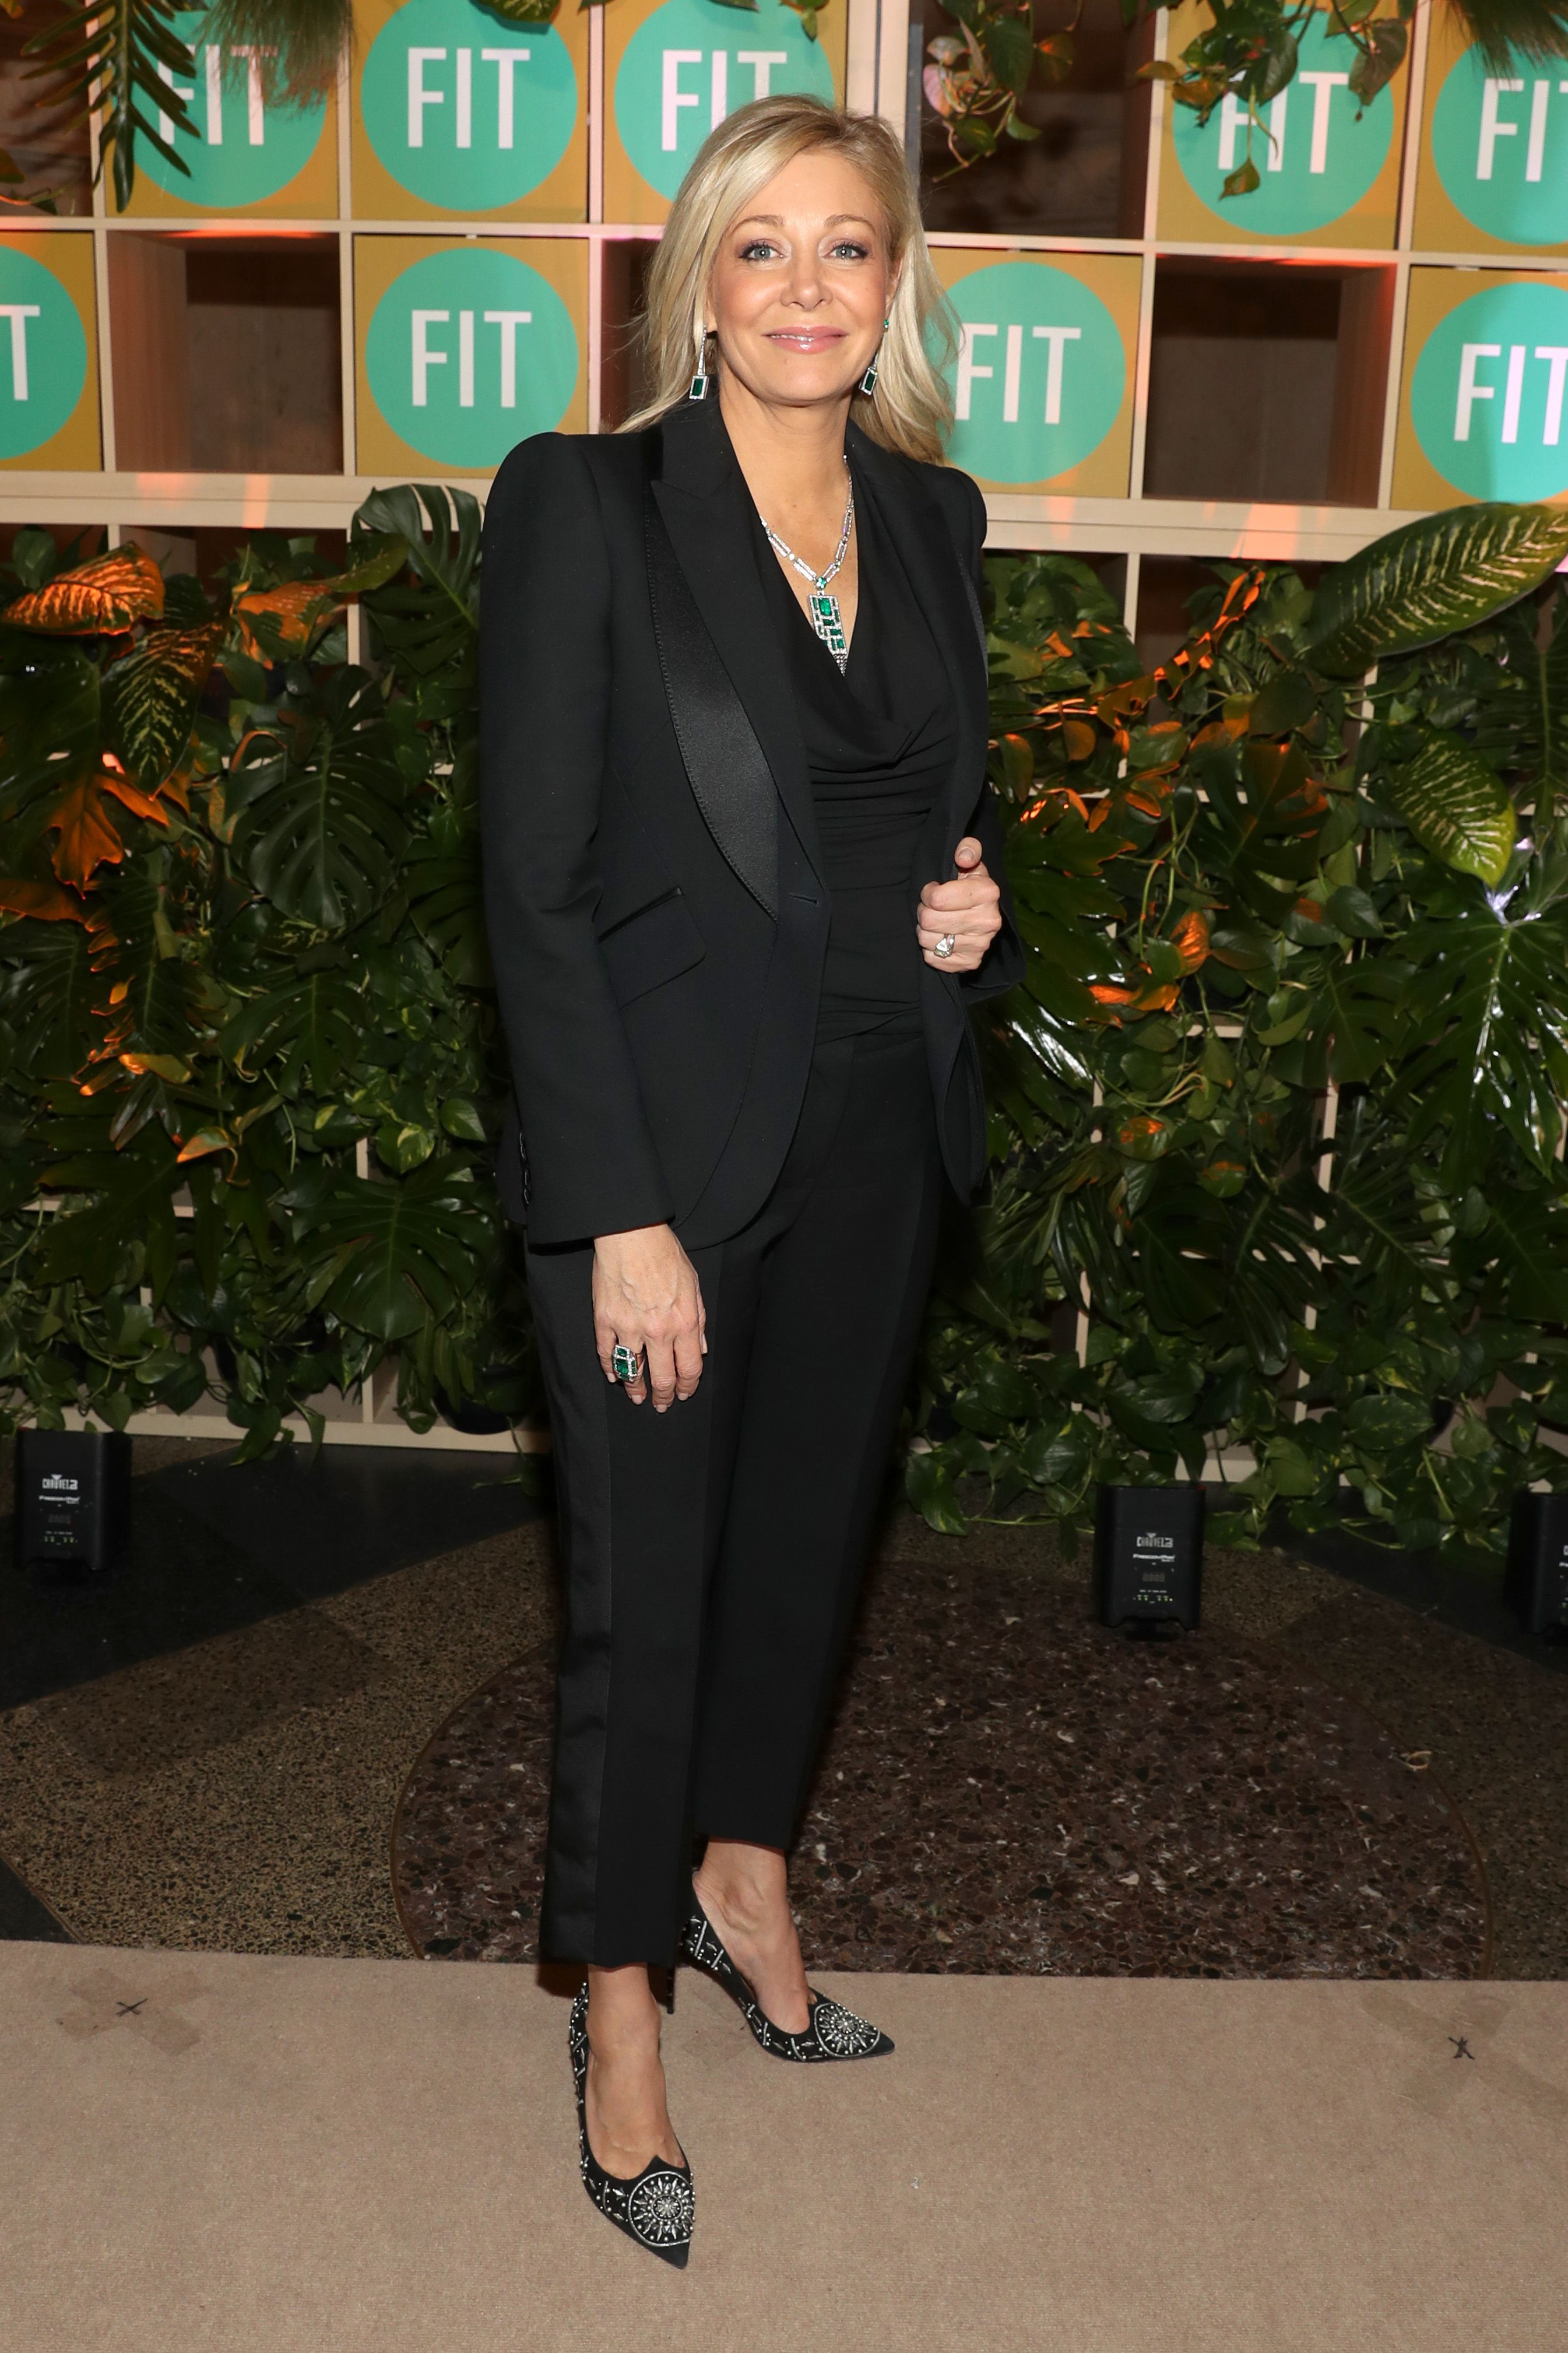 Nadja Swarovski Nadja Swarovski attends the Fashion Institute of Technology (FIT) and FIT Foundation's 2019 Annual Awards Gala at the American Museum of Natural History on April 3 in New York.